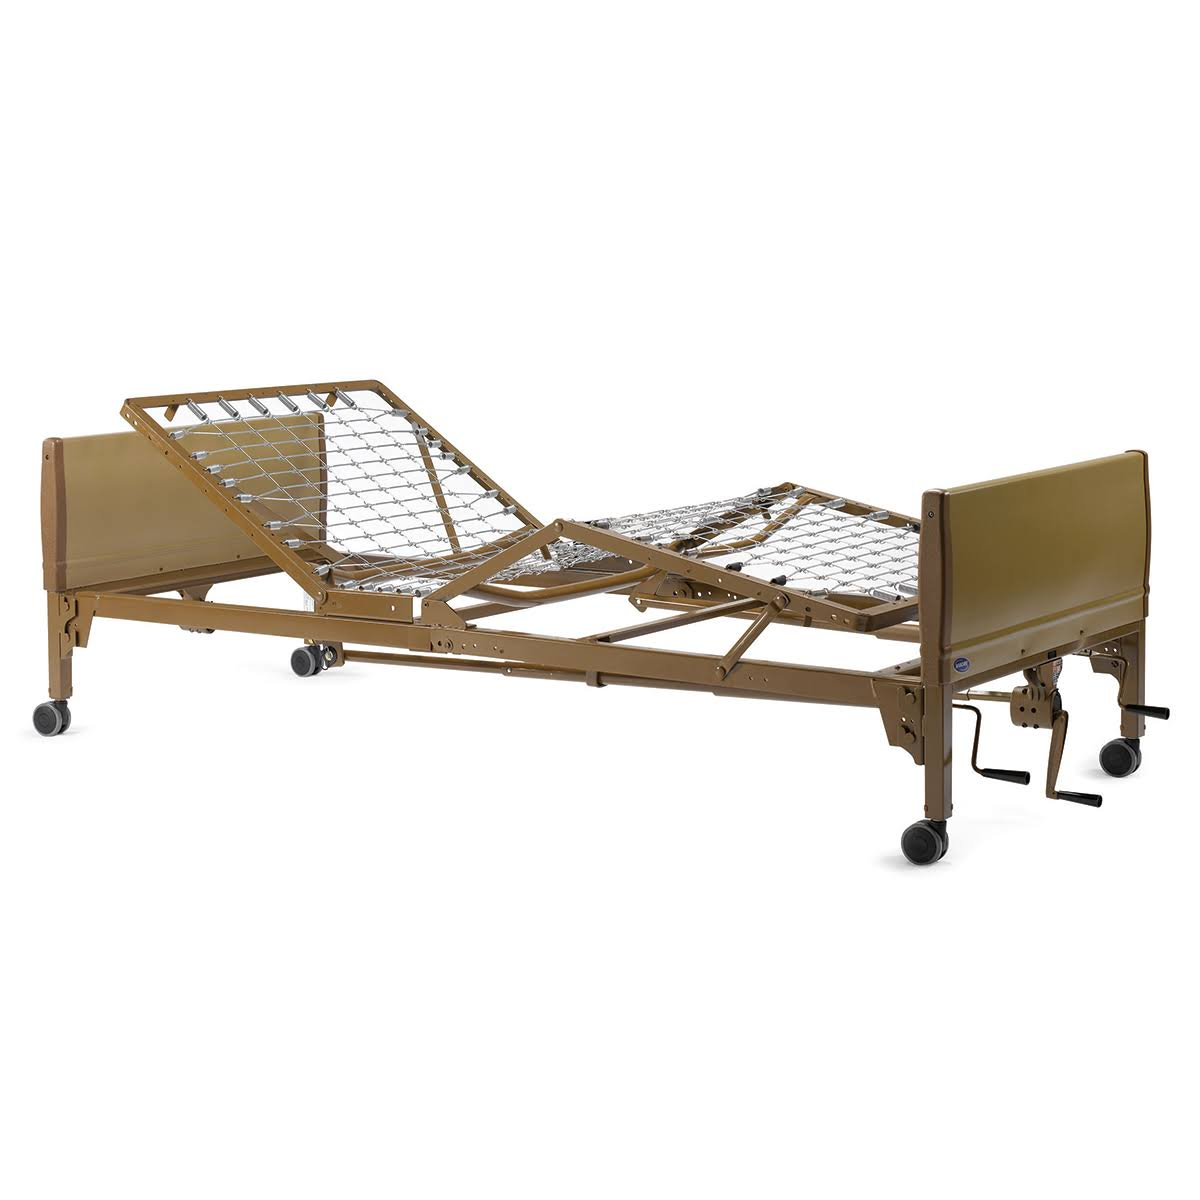 Invacare - 5307IVC - Manual Homecare Bed